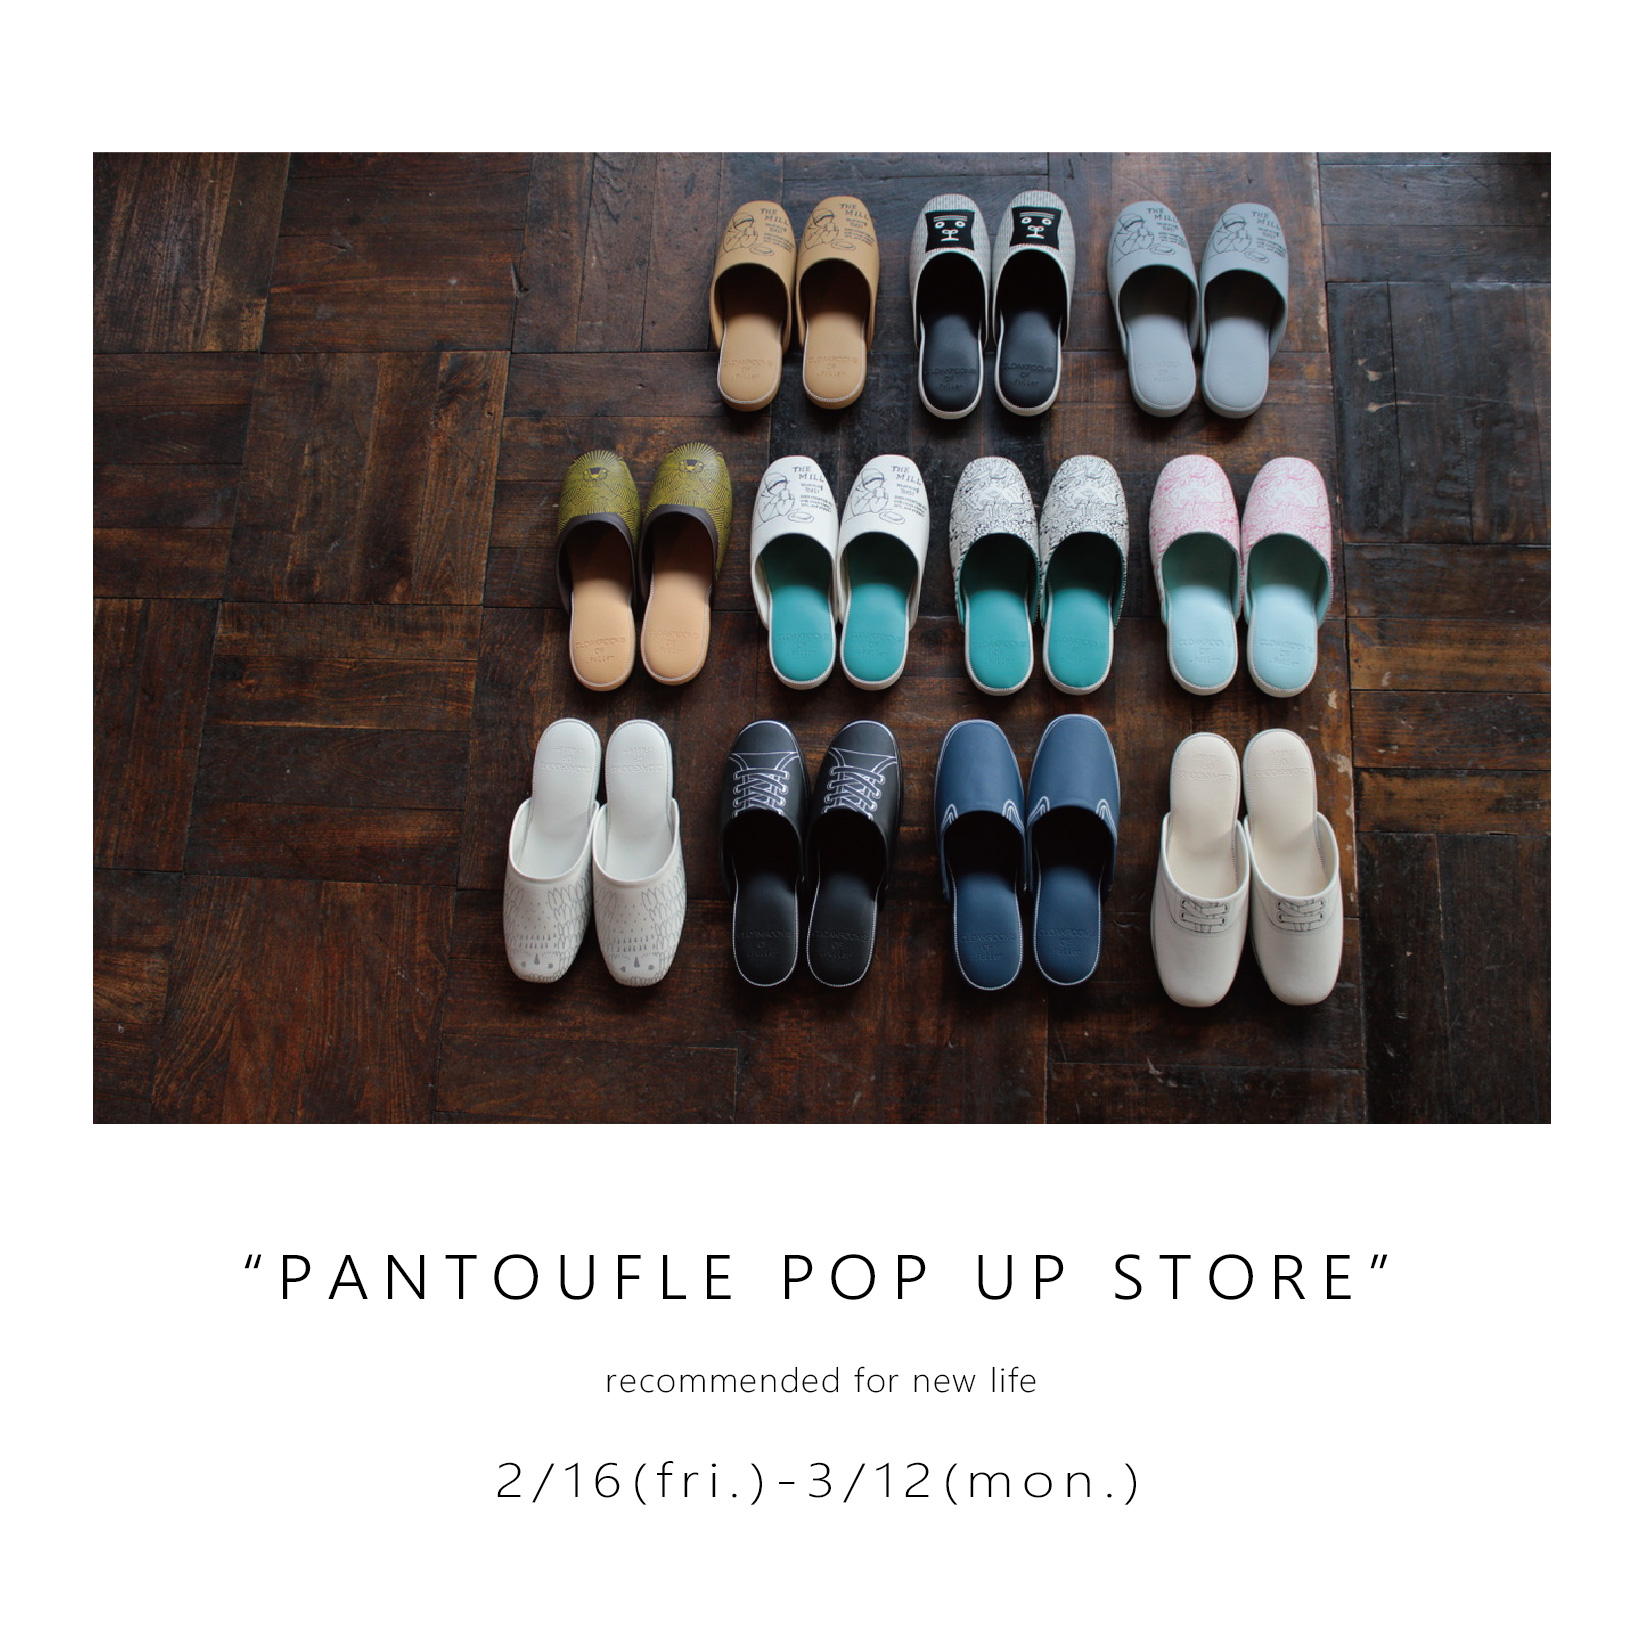 CLOAKROOMS PANTOUFLE POP UP